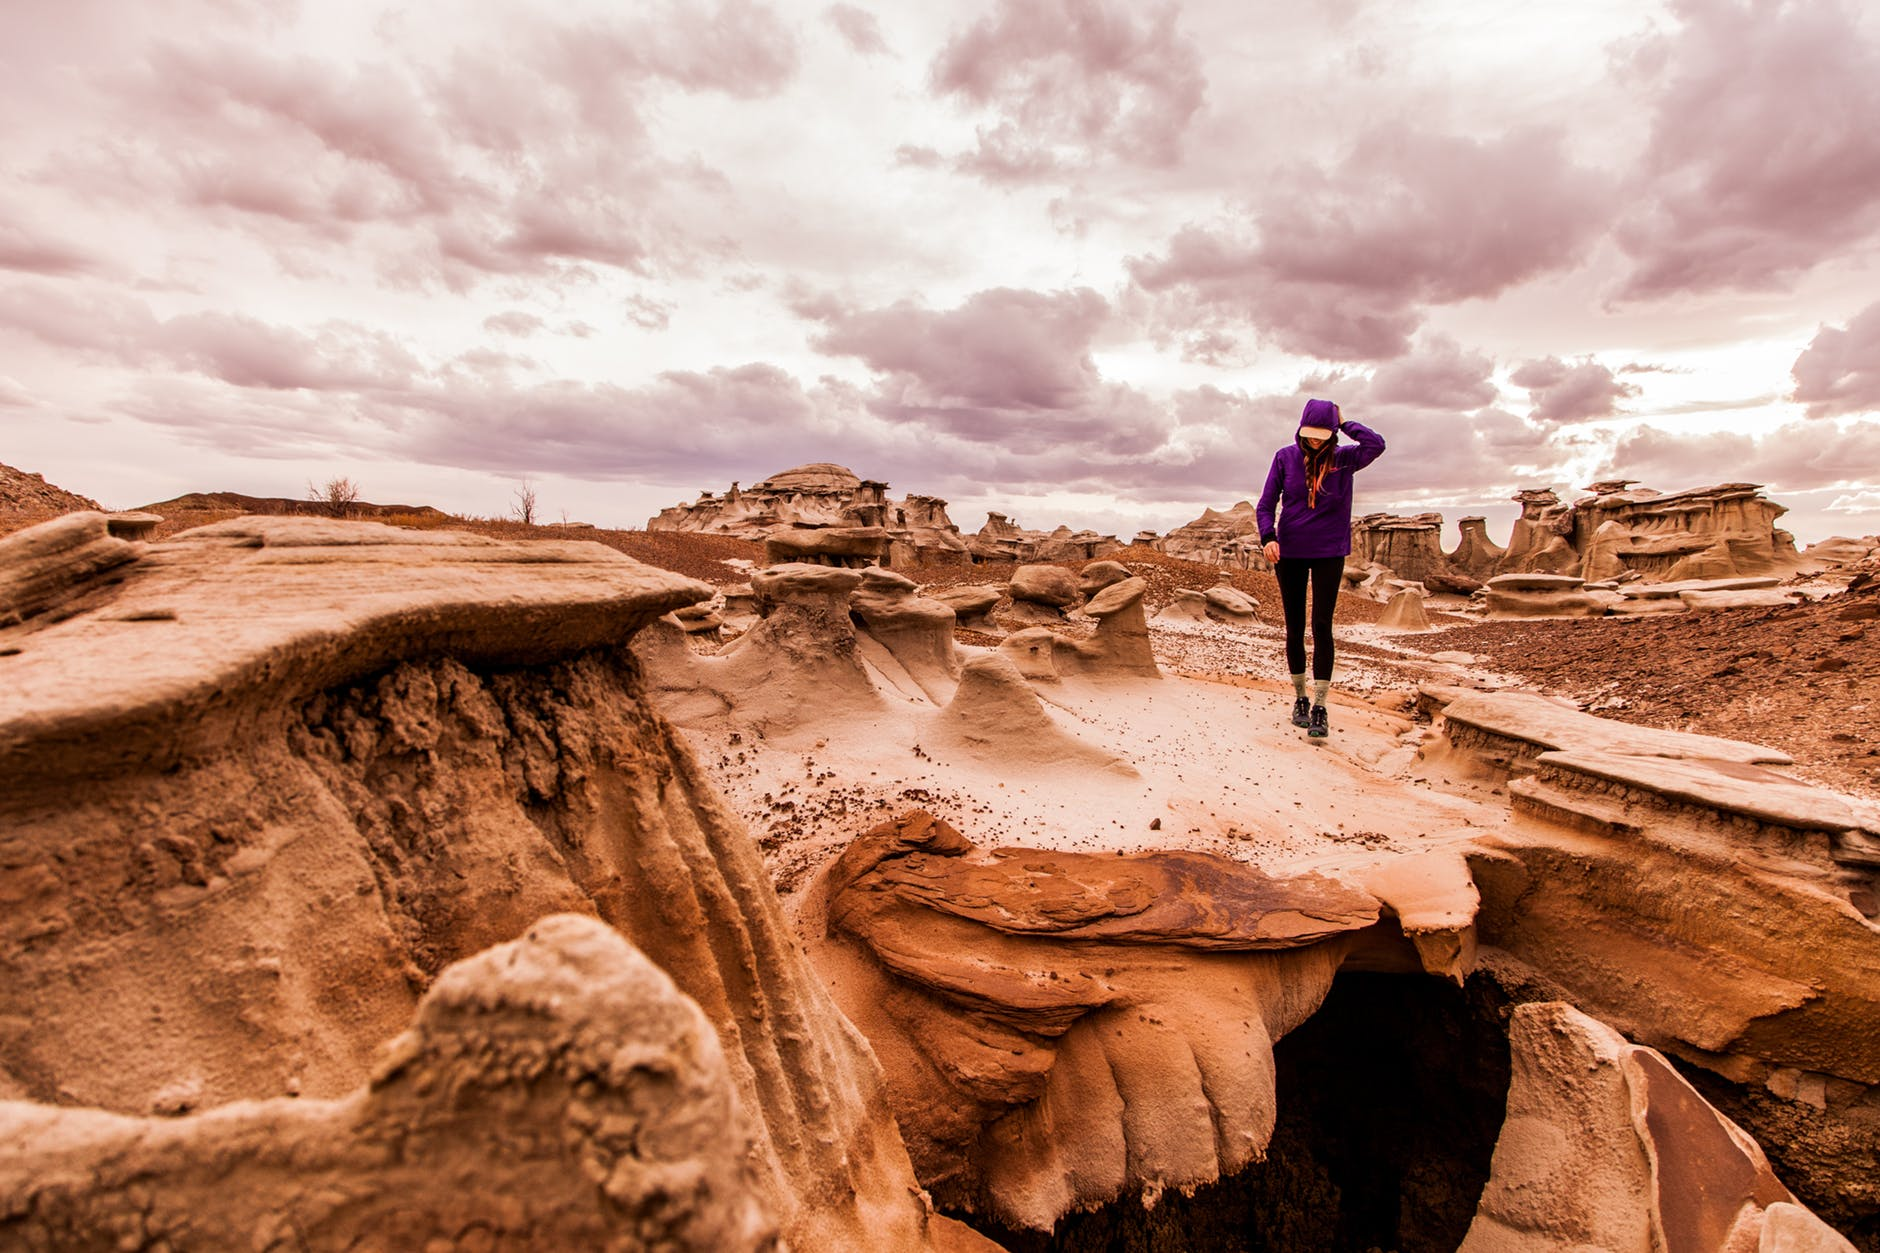 person walking on rock formation under cloudy sky